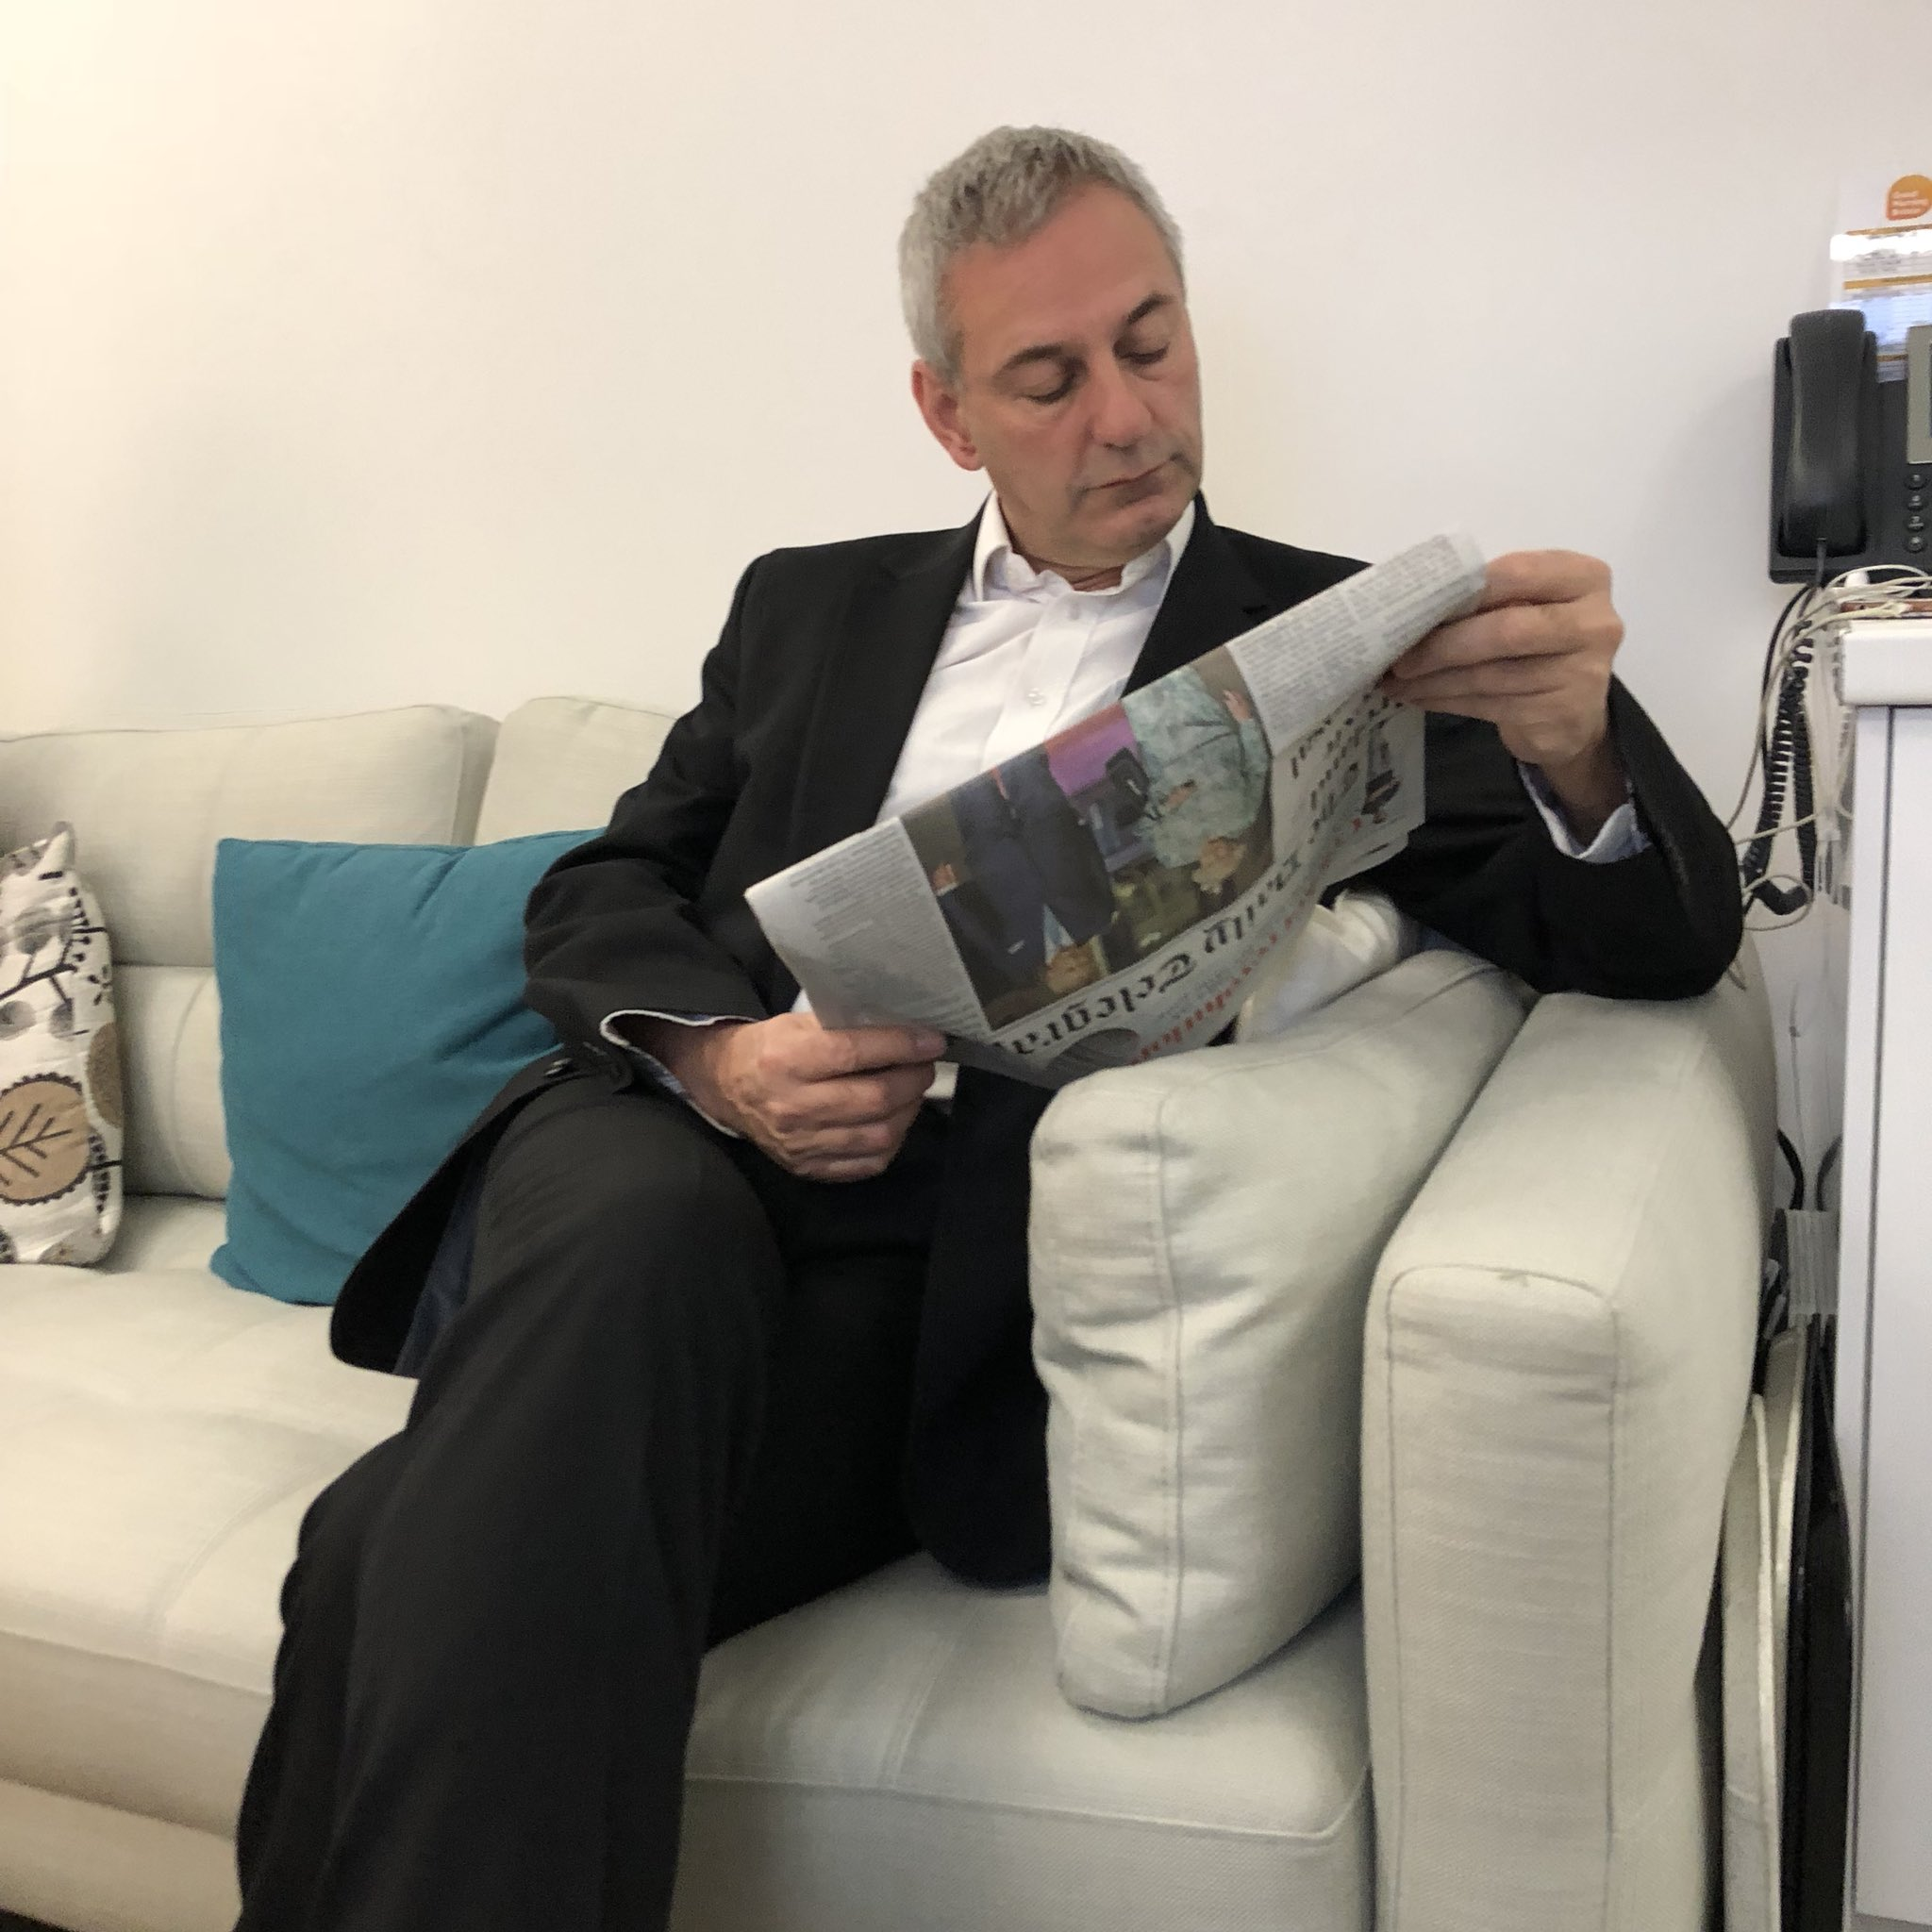 Now @Kevin_Maguire's reading the papers, which is basically cheating. https://t.co/SExPaFplkm